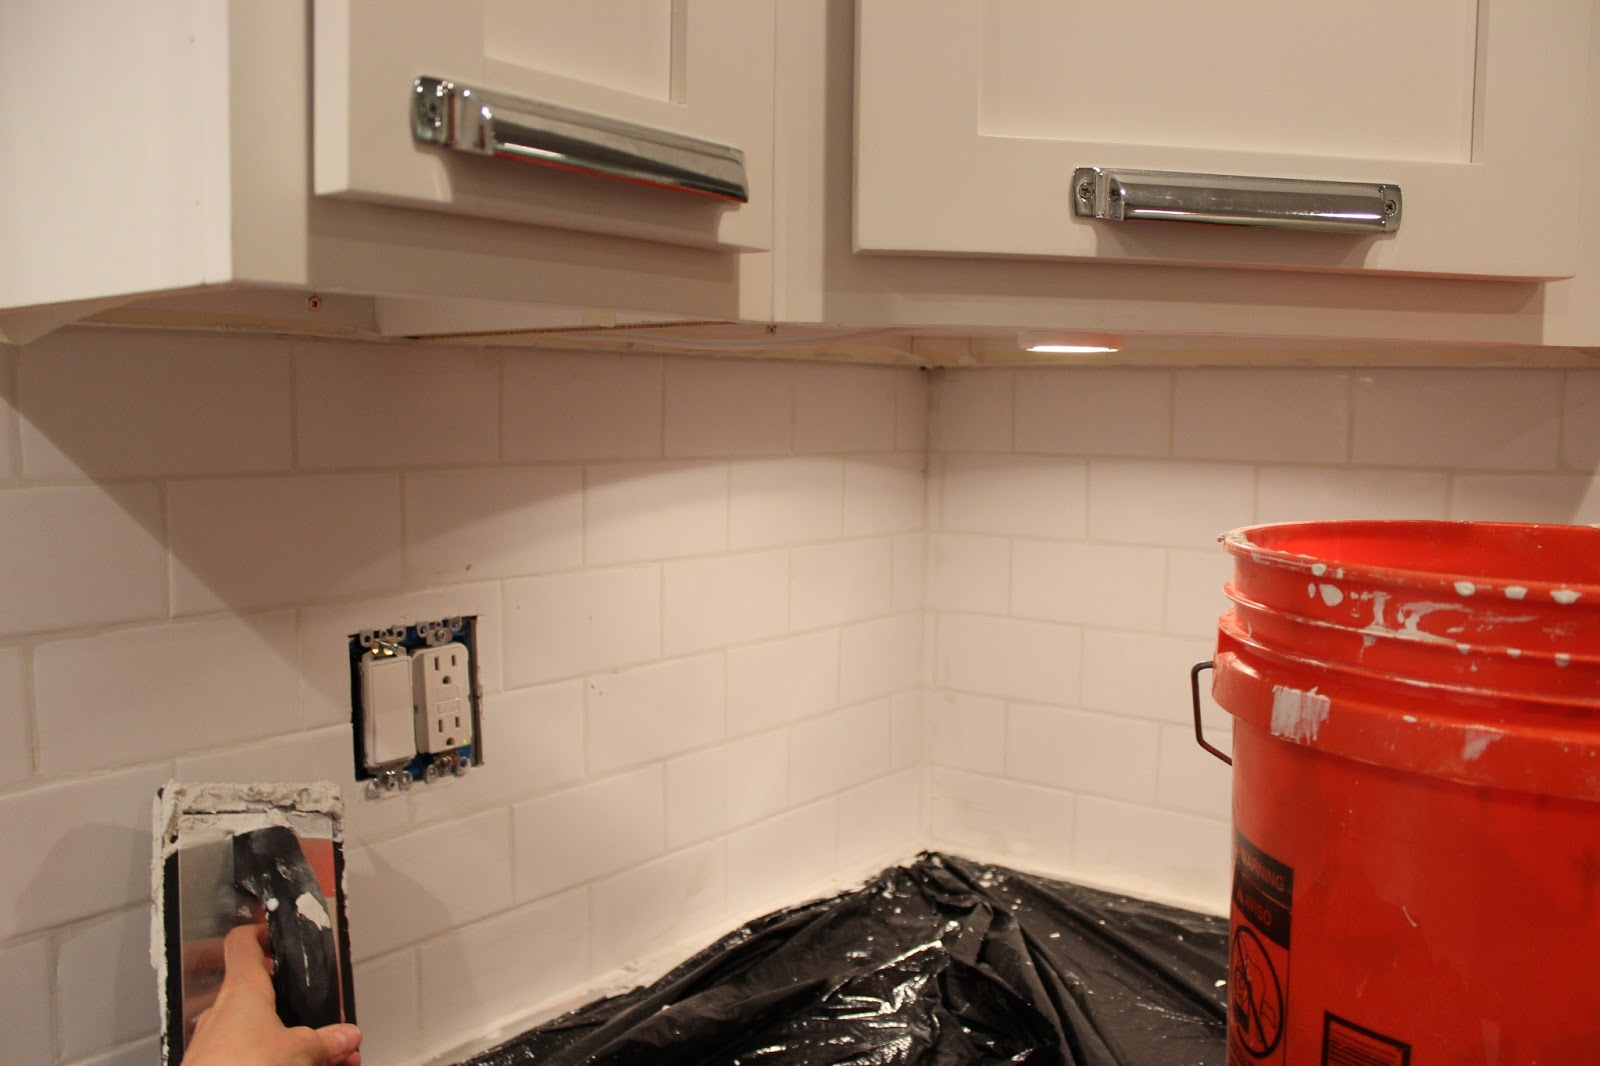 Easy diy subway tile backsplash tutorial dream book design caulk and you are finished dailygadgetfo Image collections